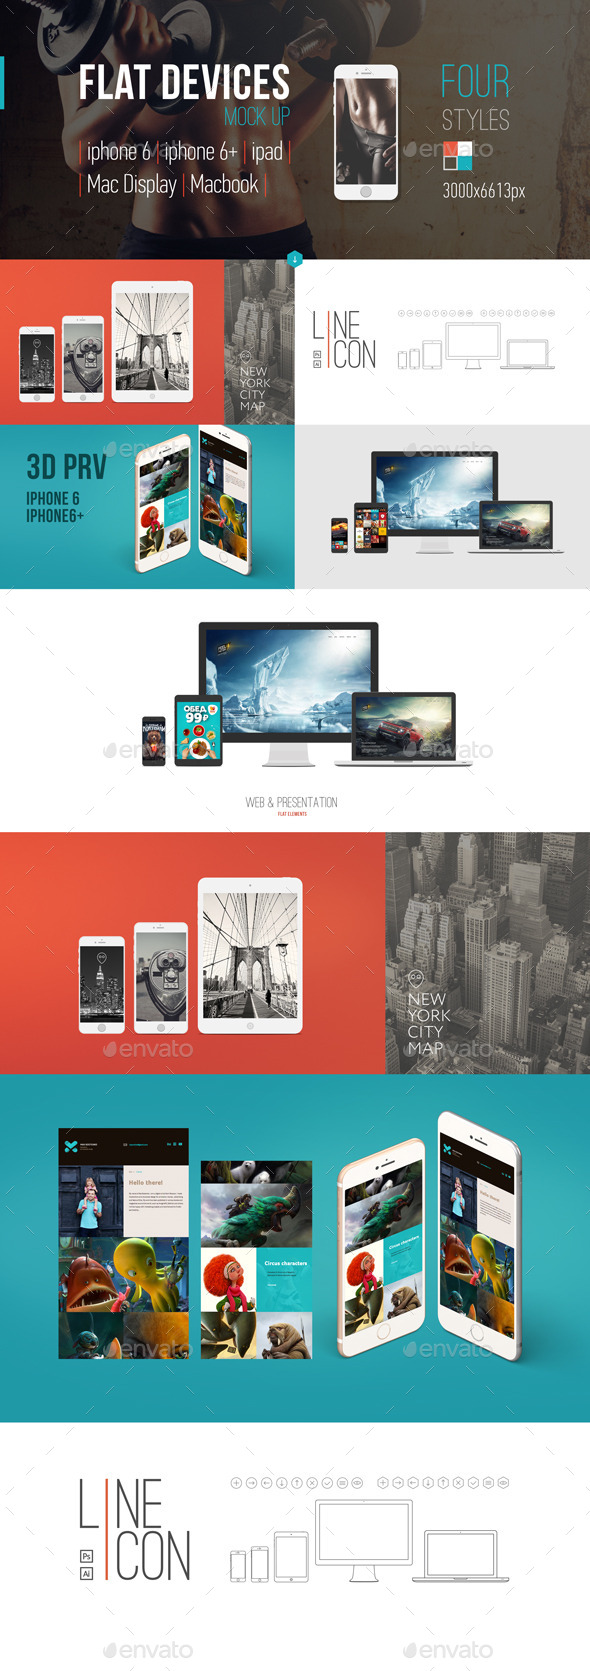 GraphicRiver Flat-style Devices Mock-Up PSD 9312580